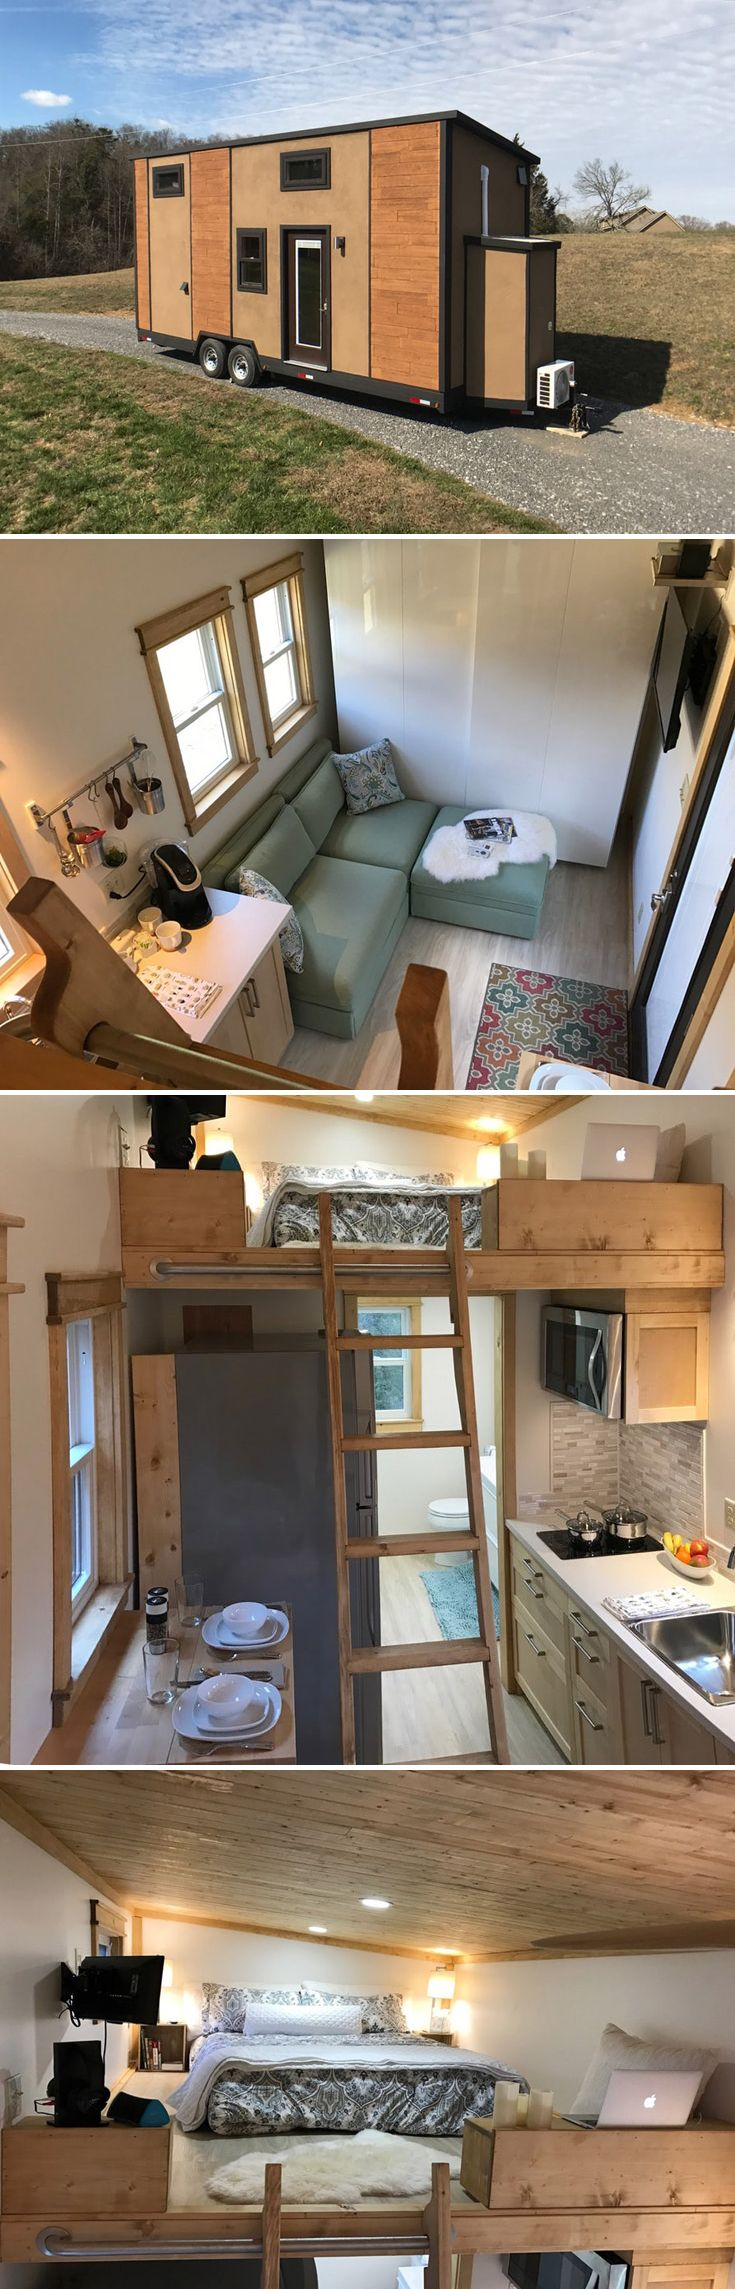 With its fiberglass composite walls, the Amsterdam by Transcend Tiny Homes is one of the lightest 24' tiny houses available, weighing in at 8,340 lbs.